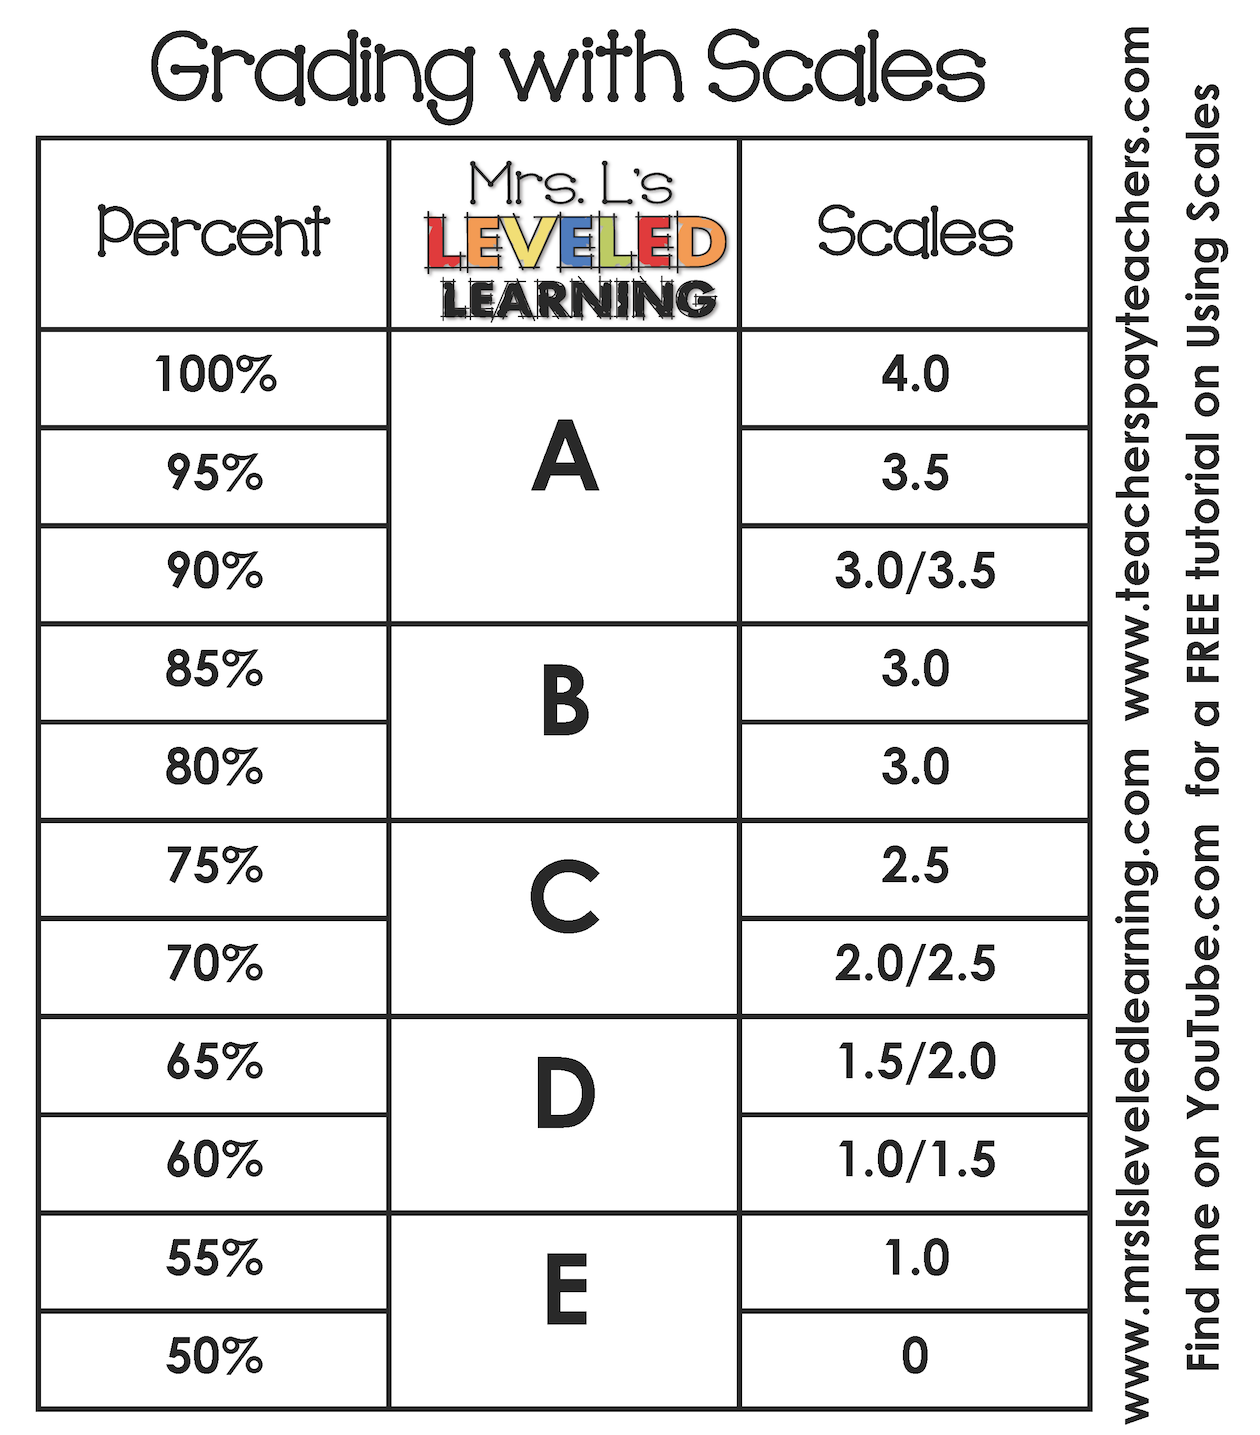 100 point grading scale grading with scales mrs l s leveled learning 9161